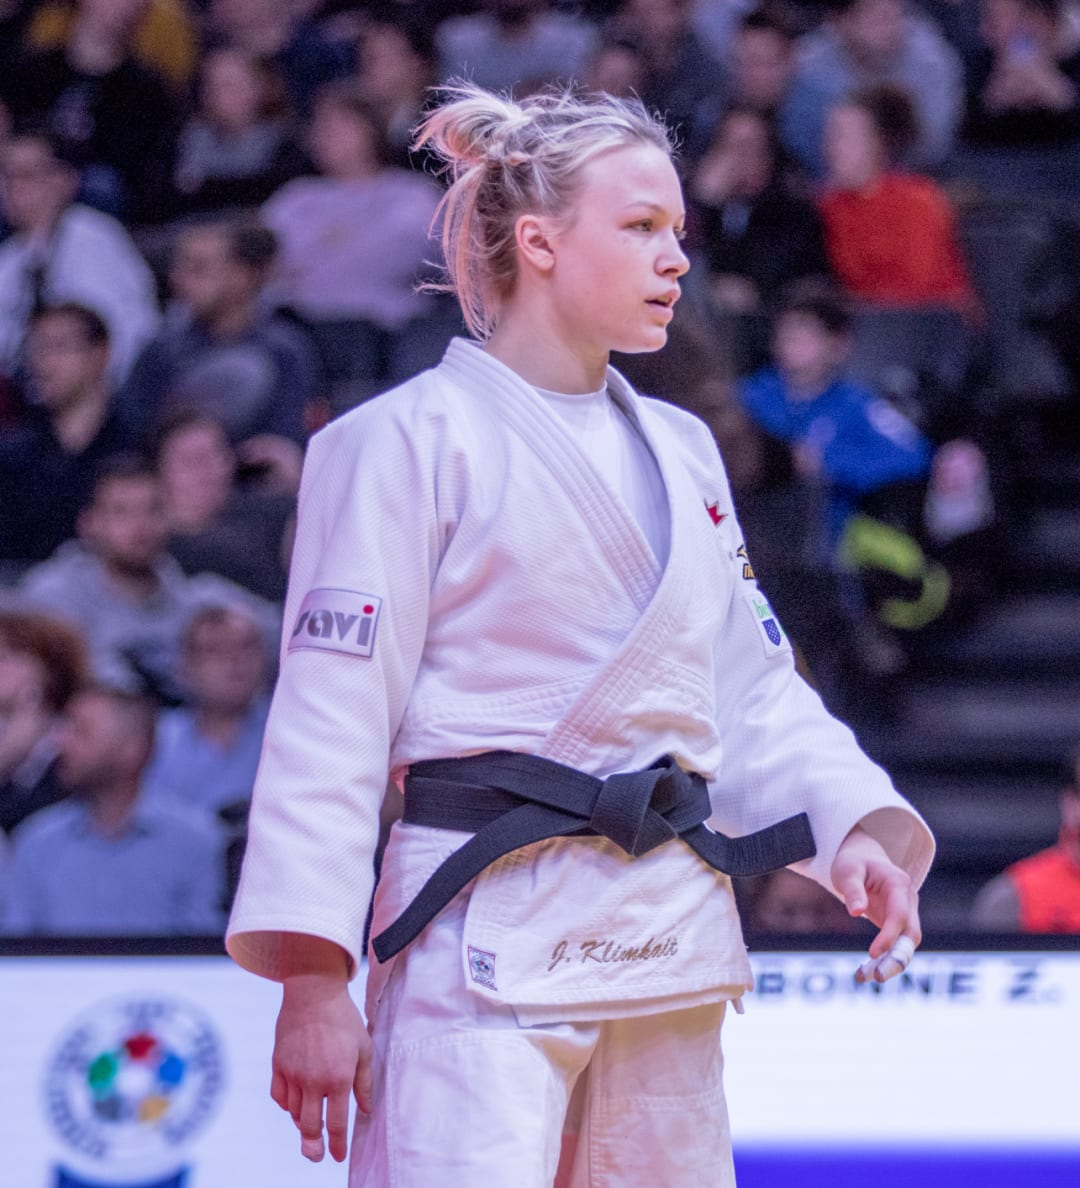 World no 1 Canadian judoka Klimkait and World no 2 Christa Deguchi to fight off for 57kg Olympic spot